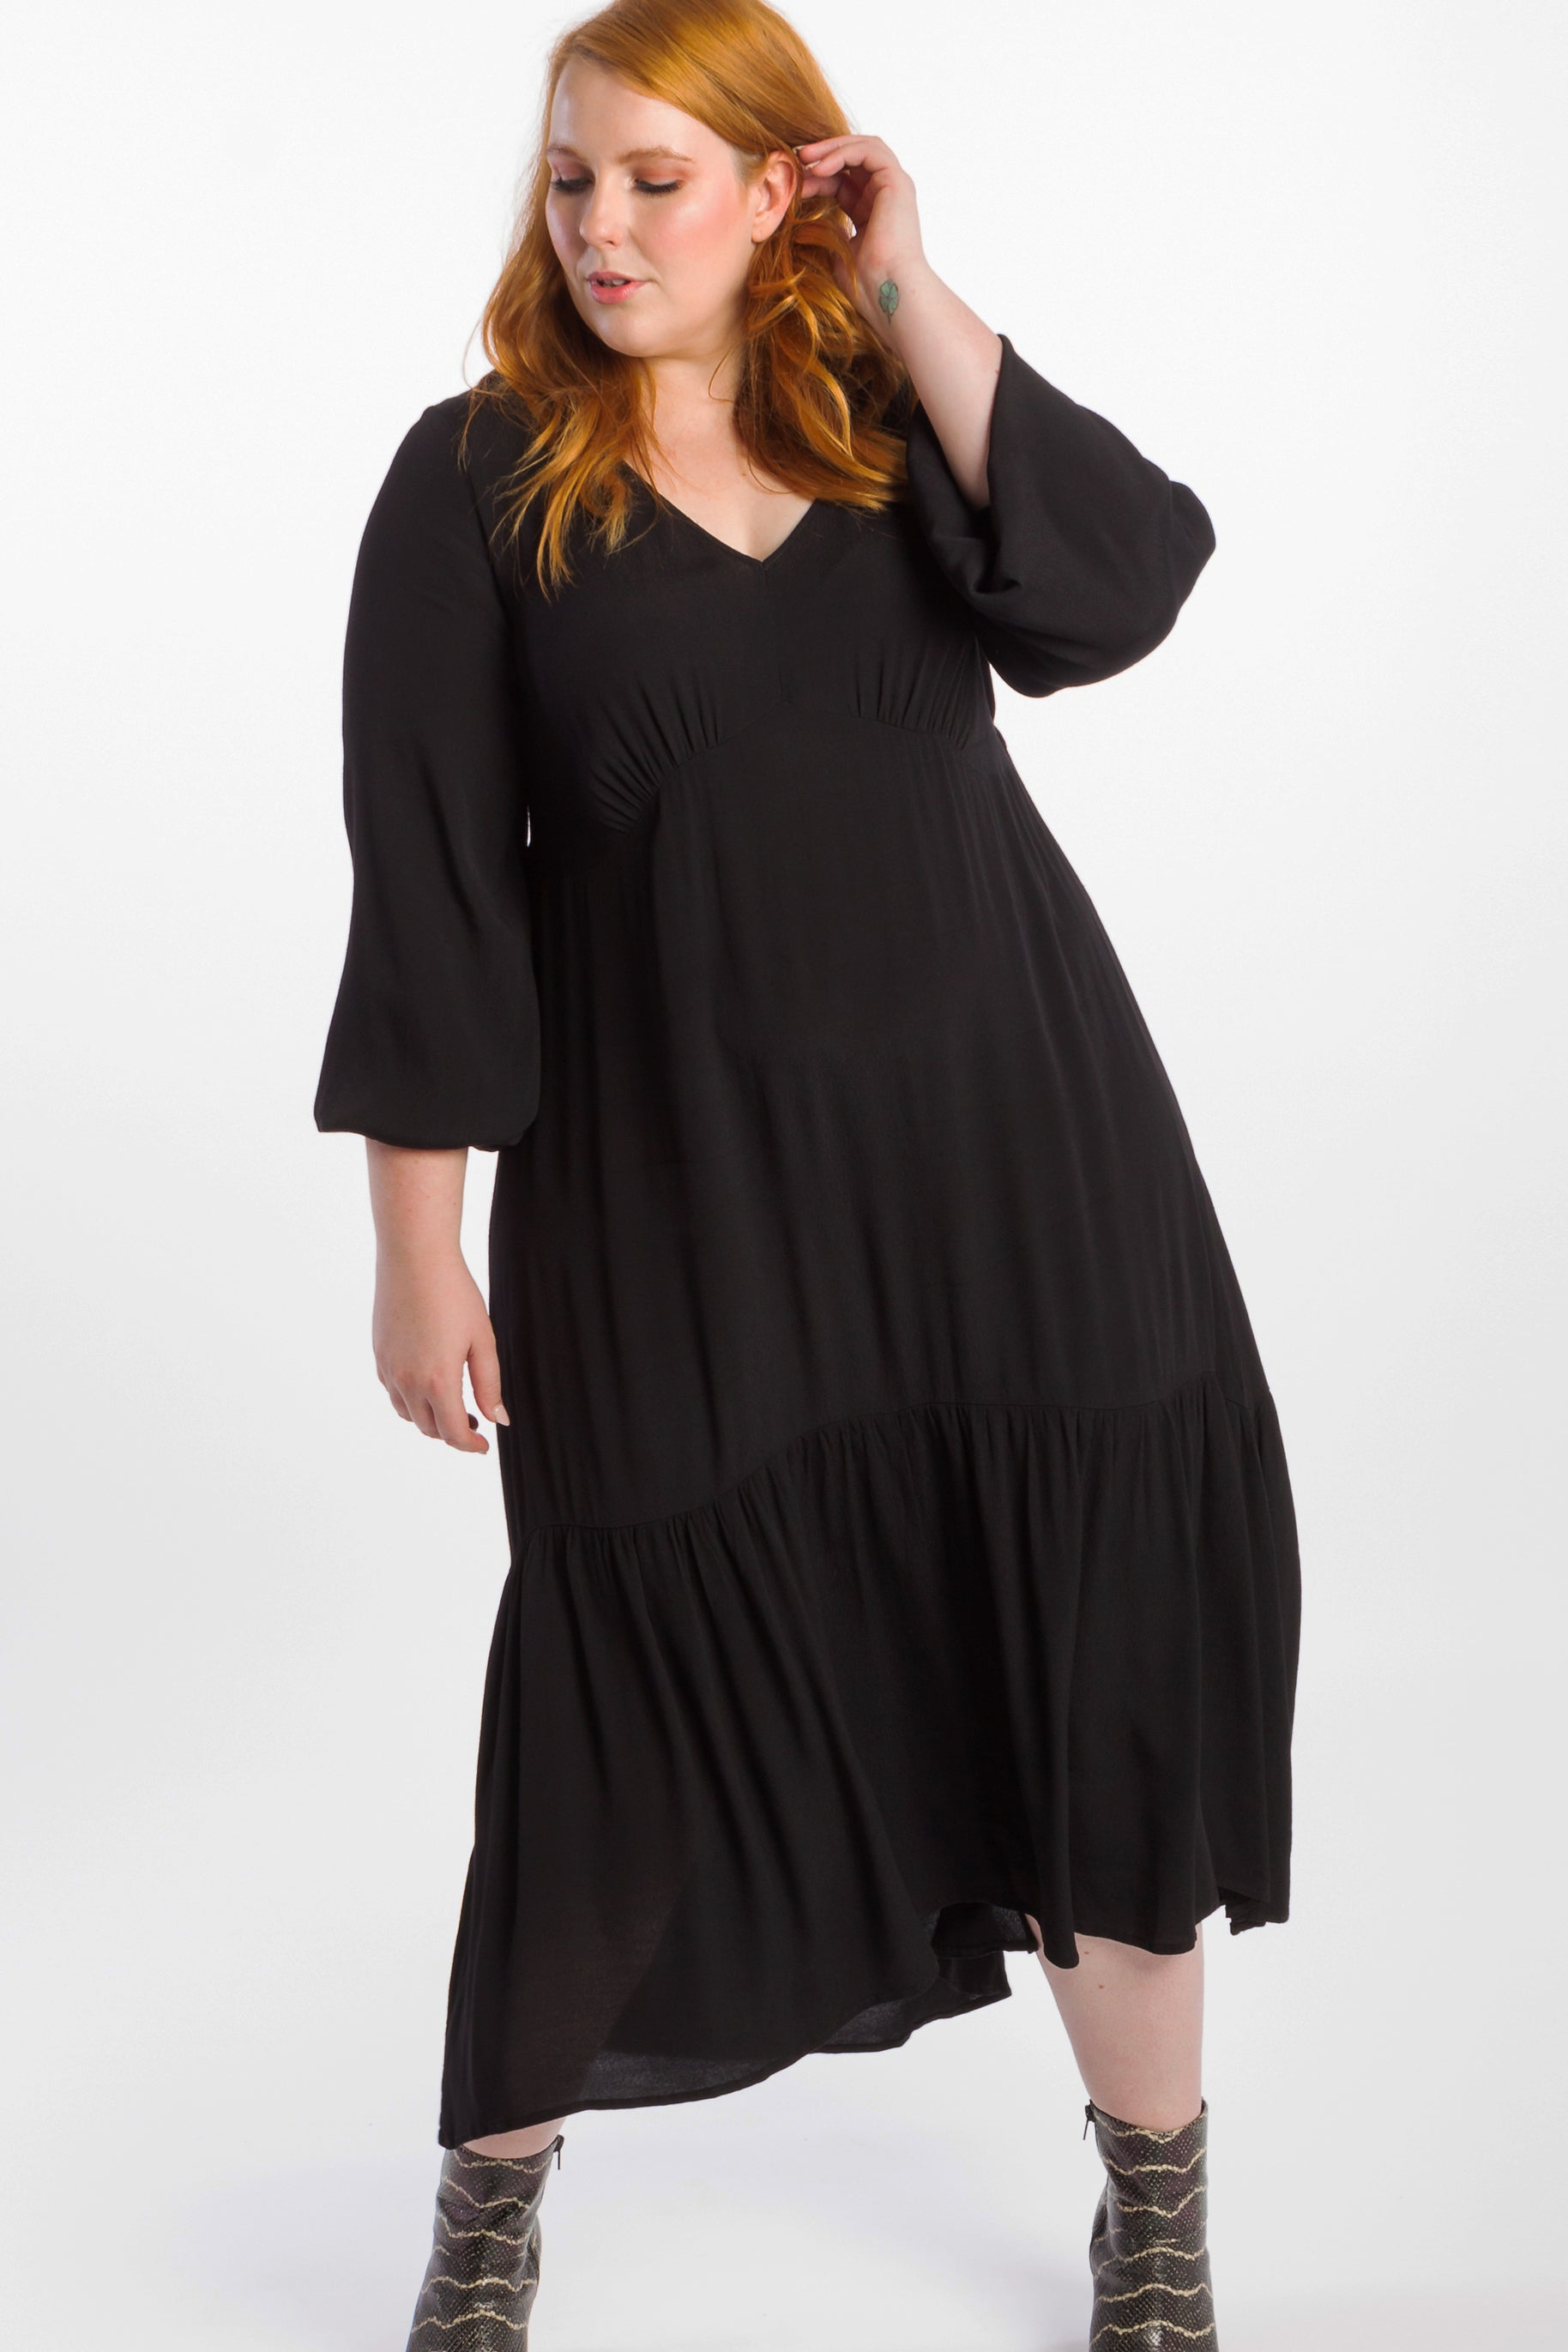 Devoted To You Maxi Dress - Black